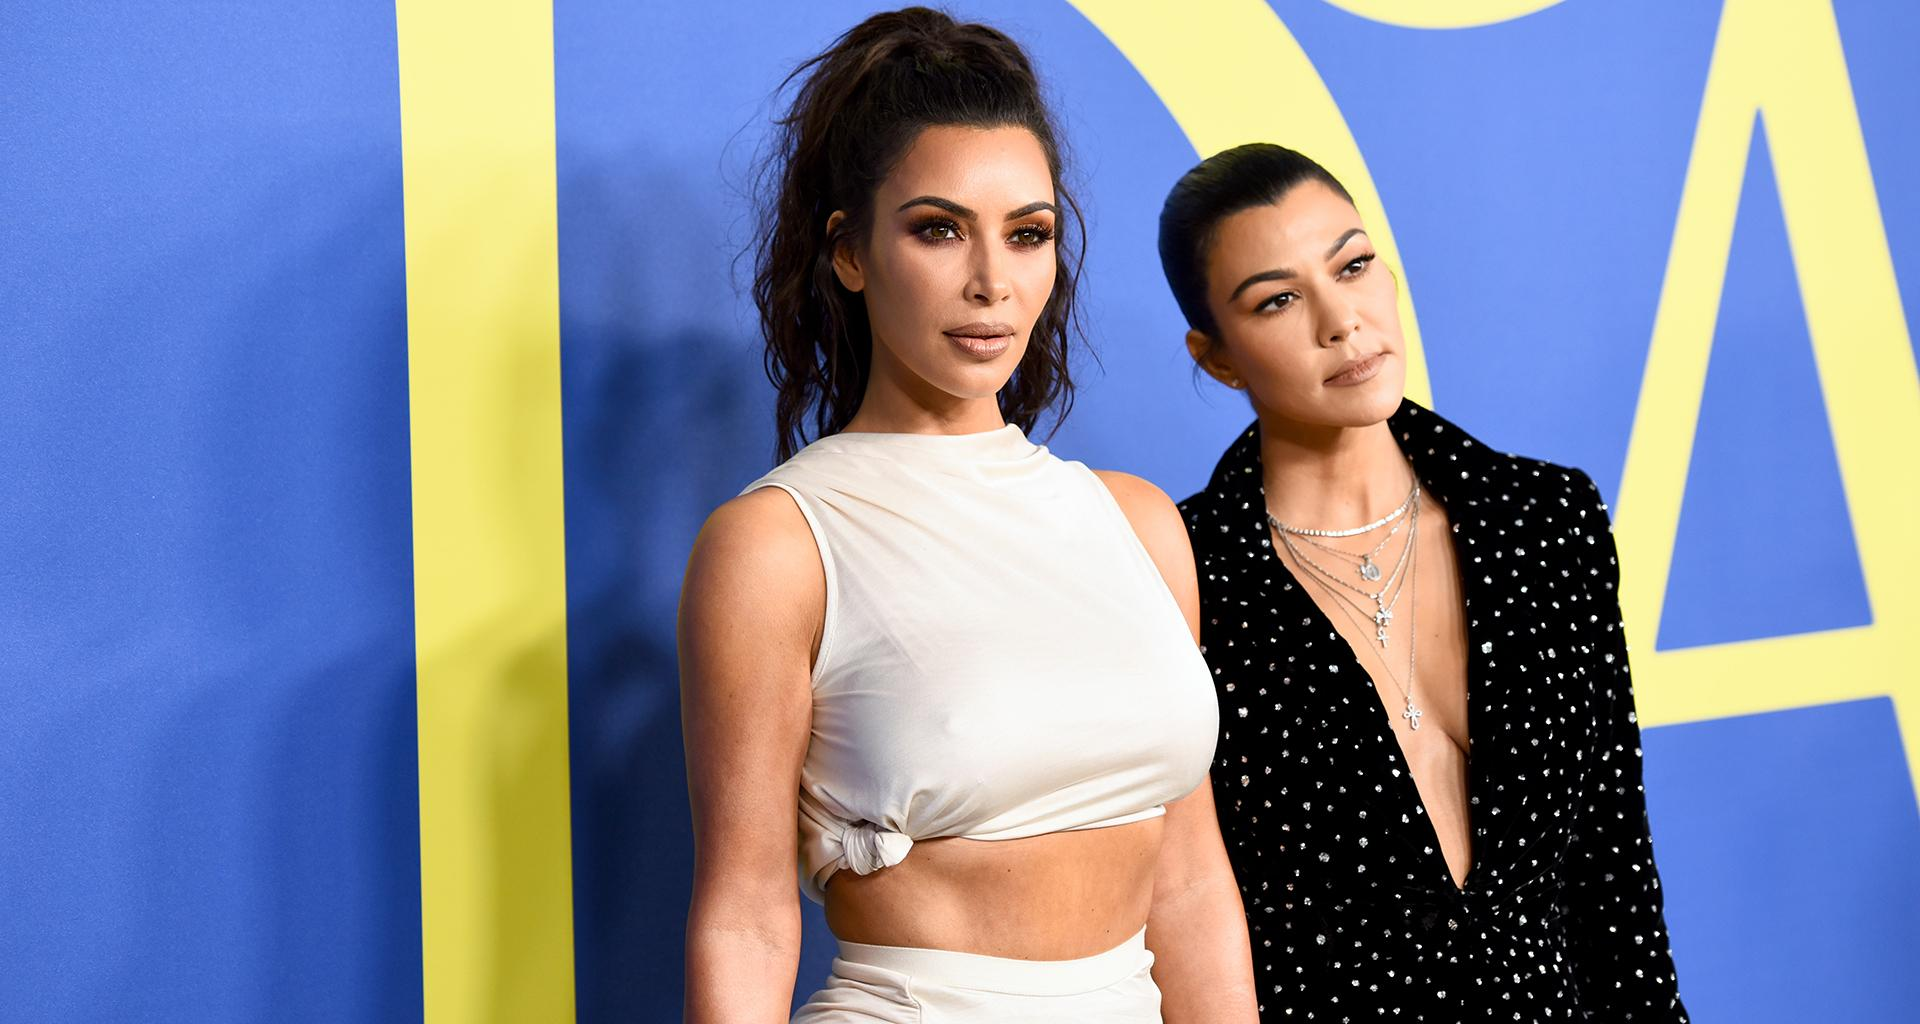 KUWK: Kris Jenner Is Worried About Kim And Kourtney's Constant Arguing